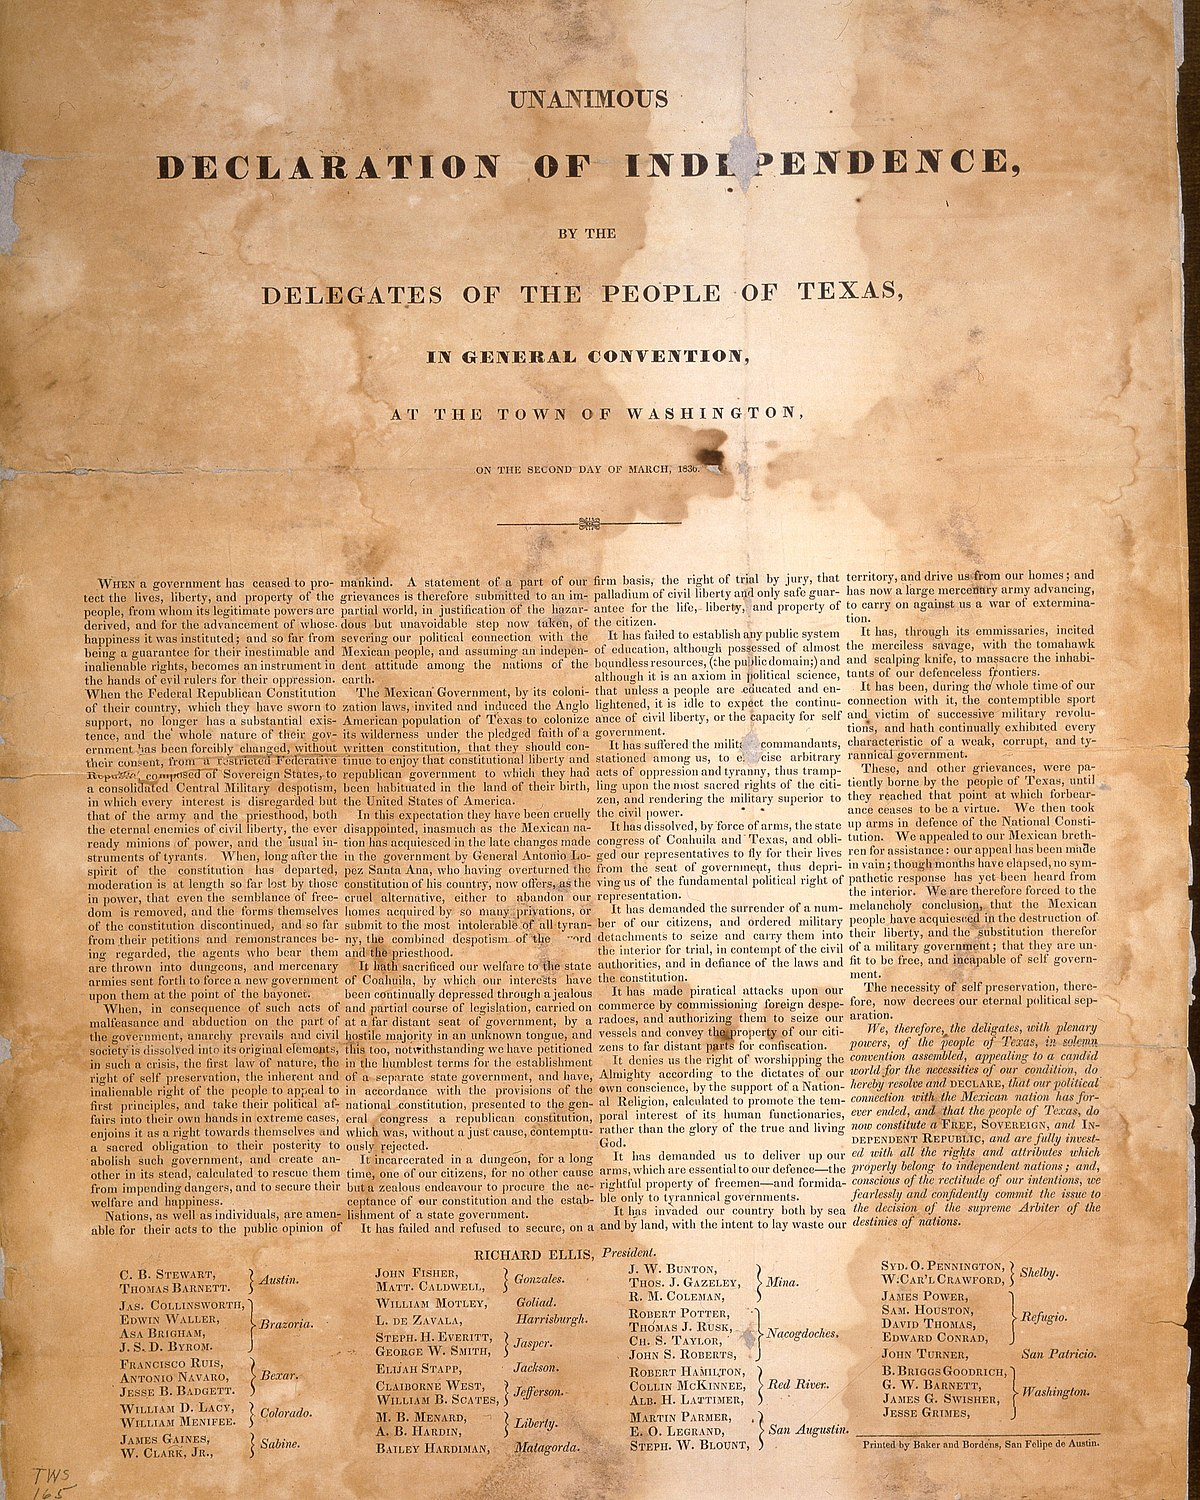 1200px-Declaration_Broadside_from_transparency_1909_1_344.jpg